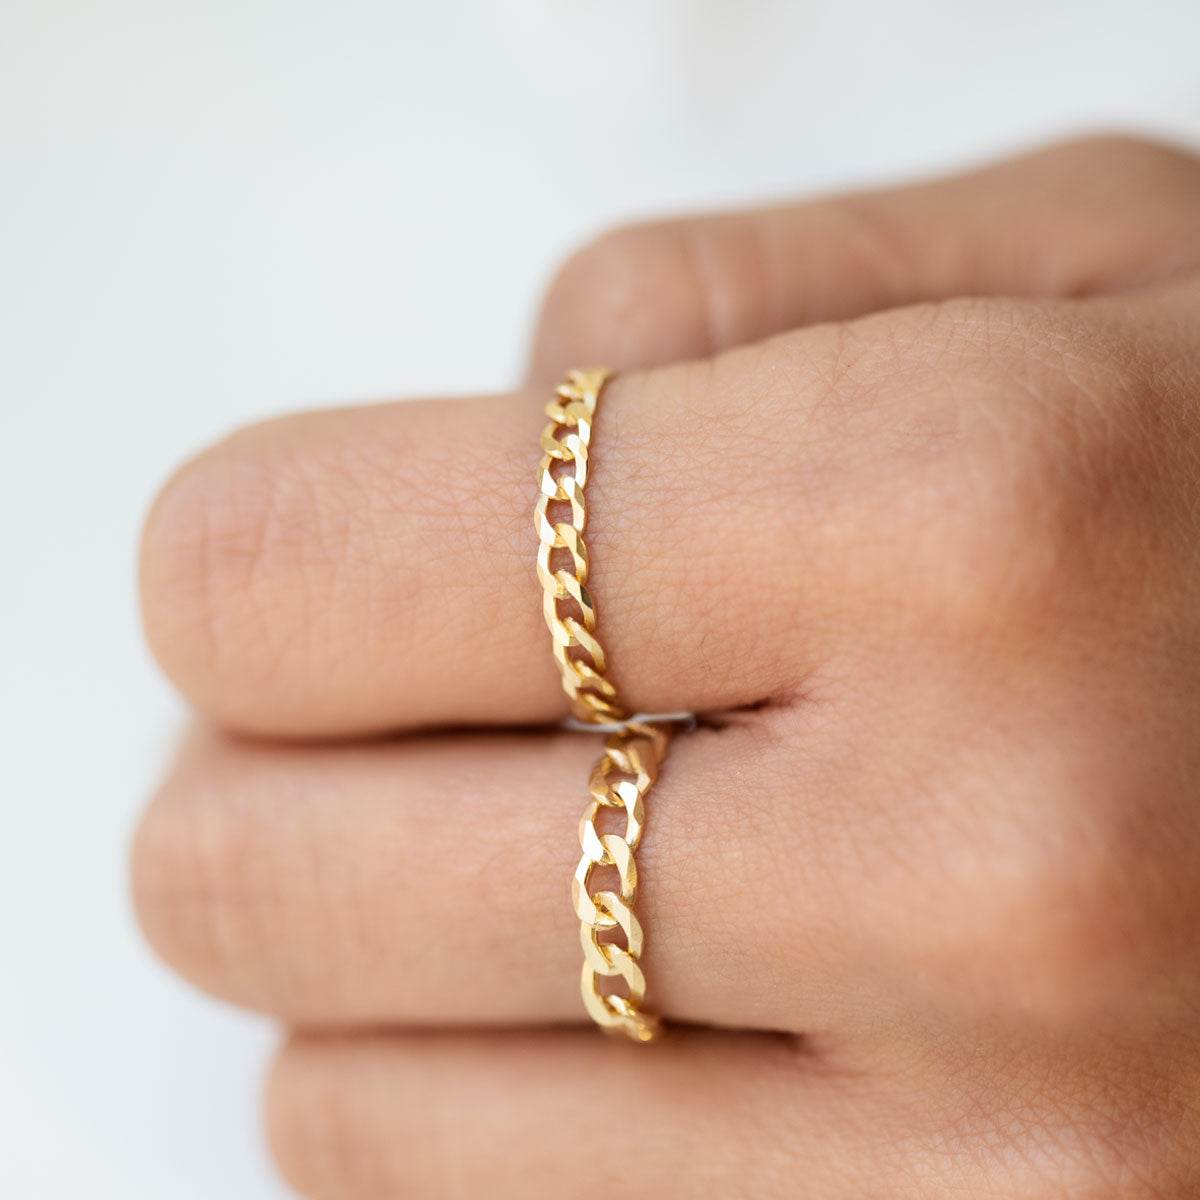 Gold Curb Chain Rings worn on Index and Middle Finger